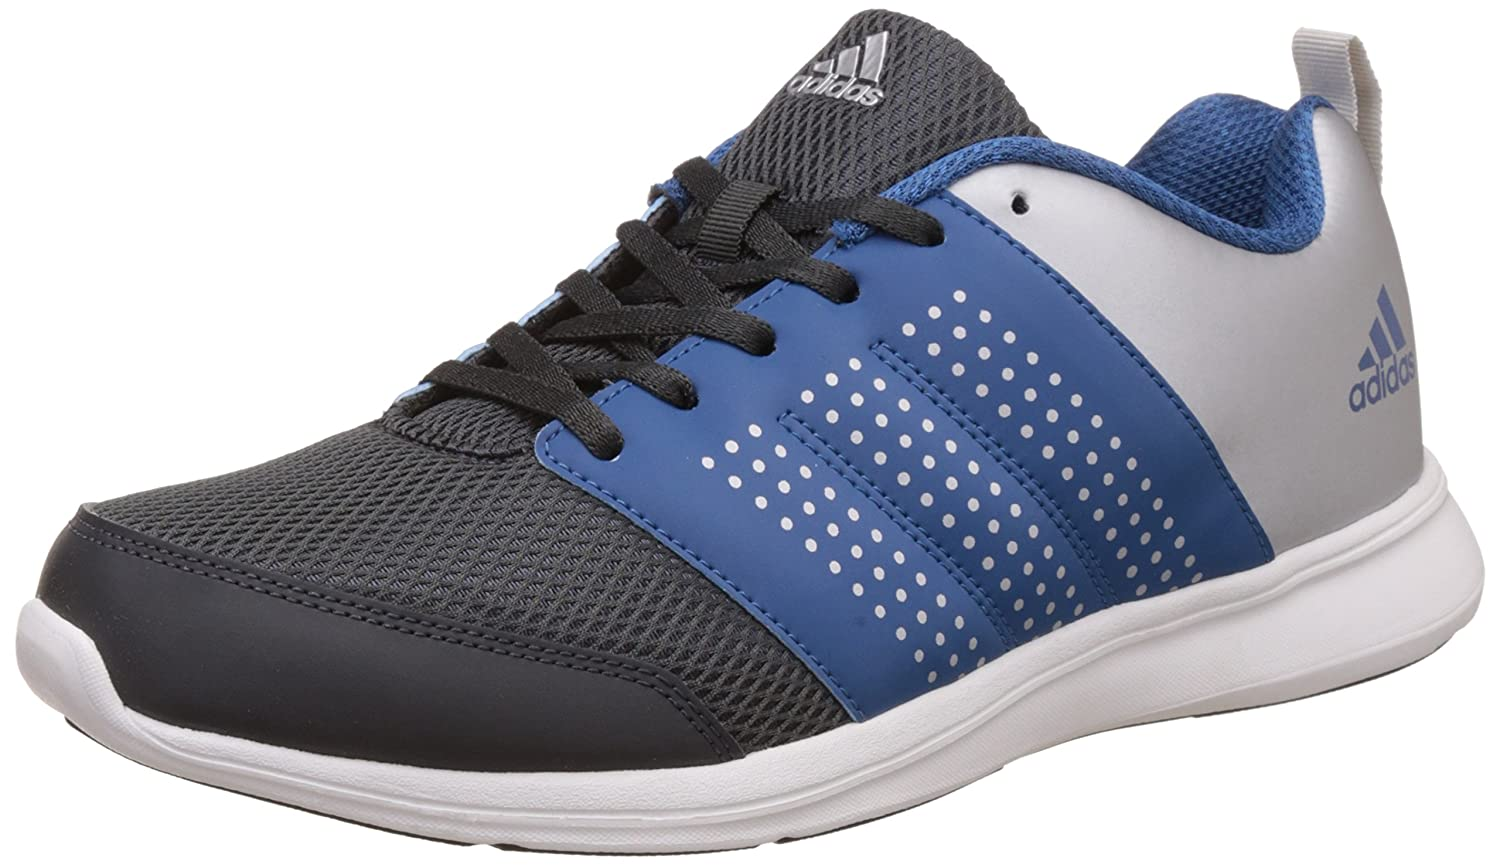 the latest bda24 5c72d Adidas Mens Adispree M Running Shoes Buy Online at Low Prices in India -  Amazon.in